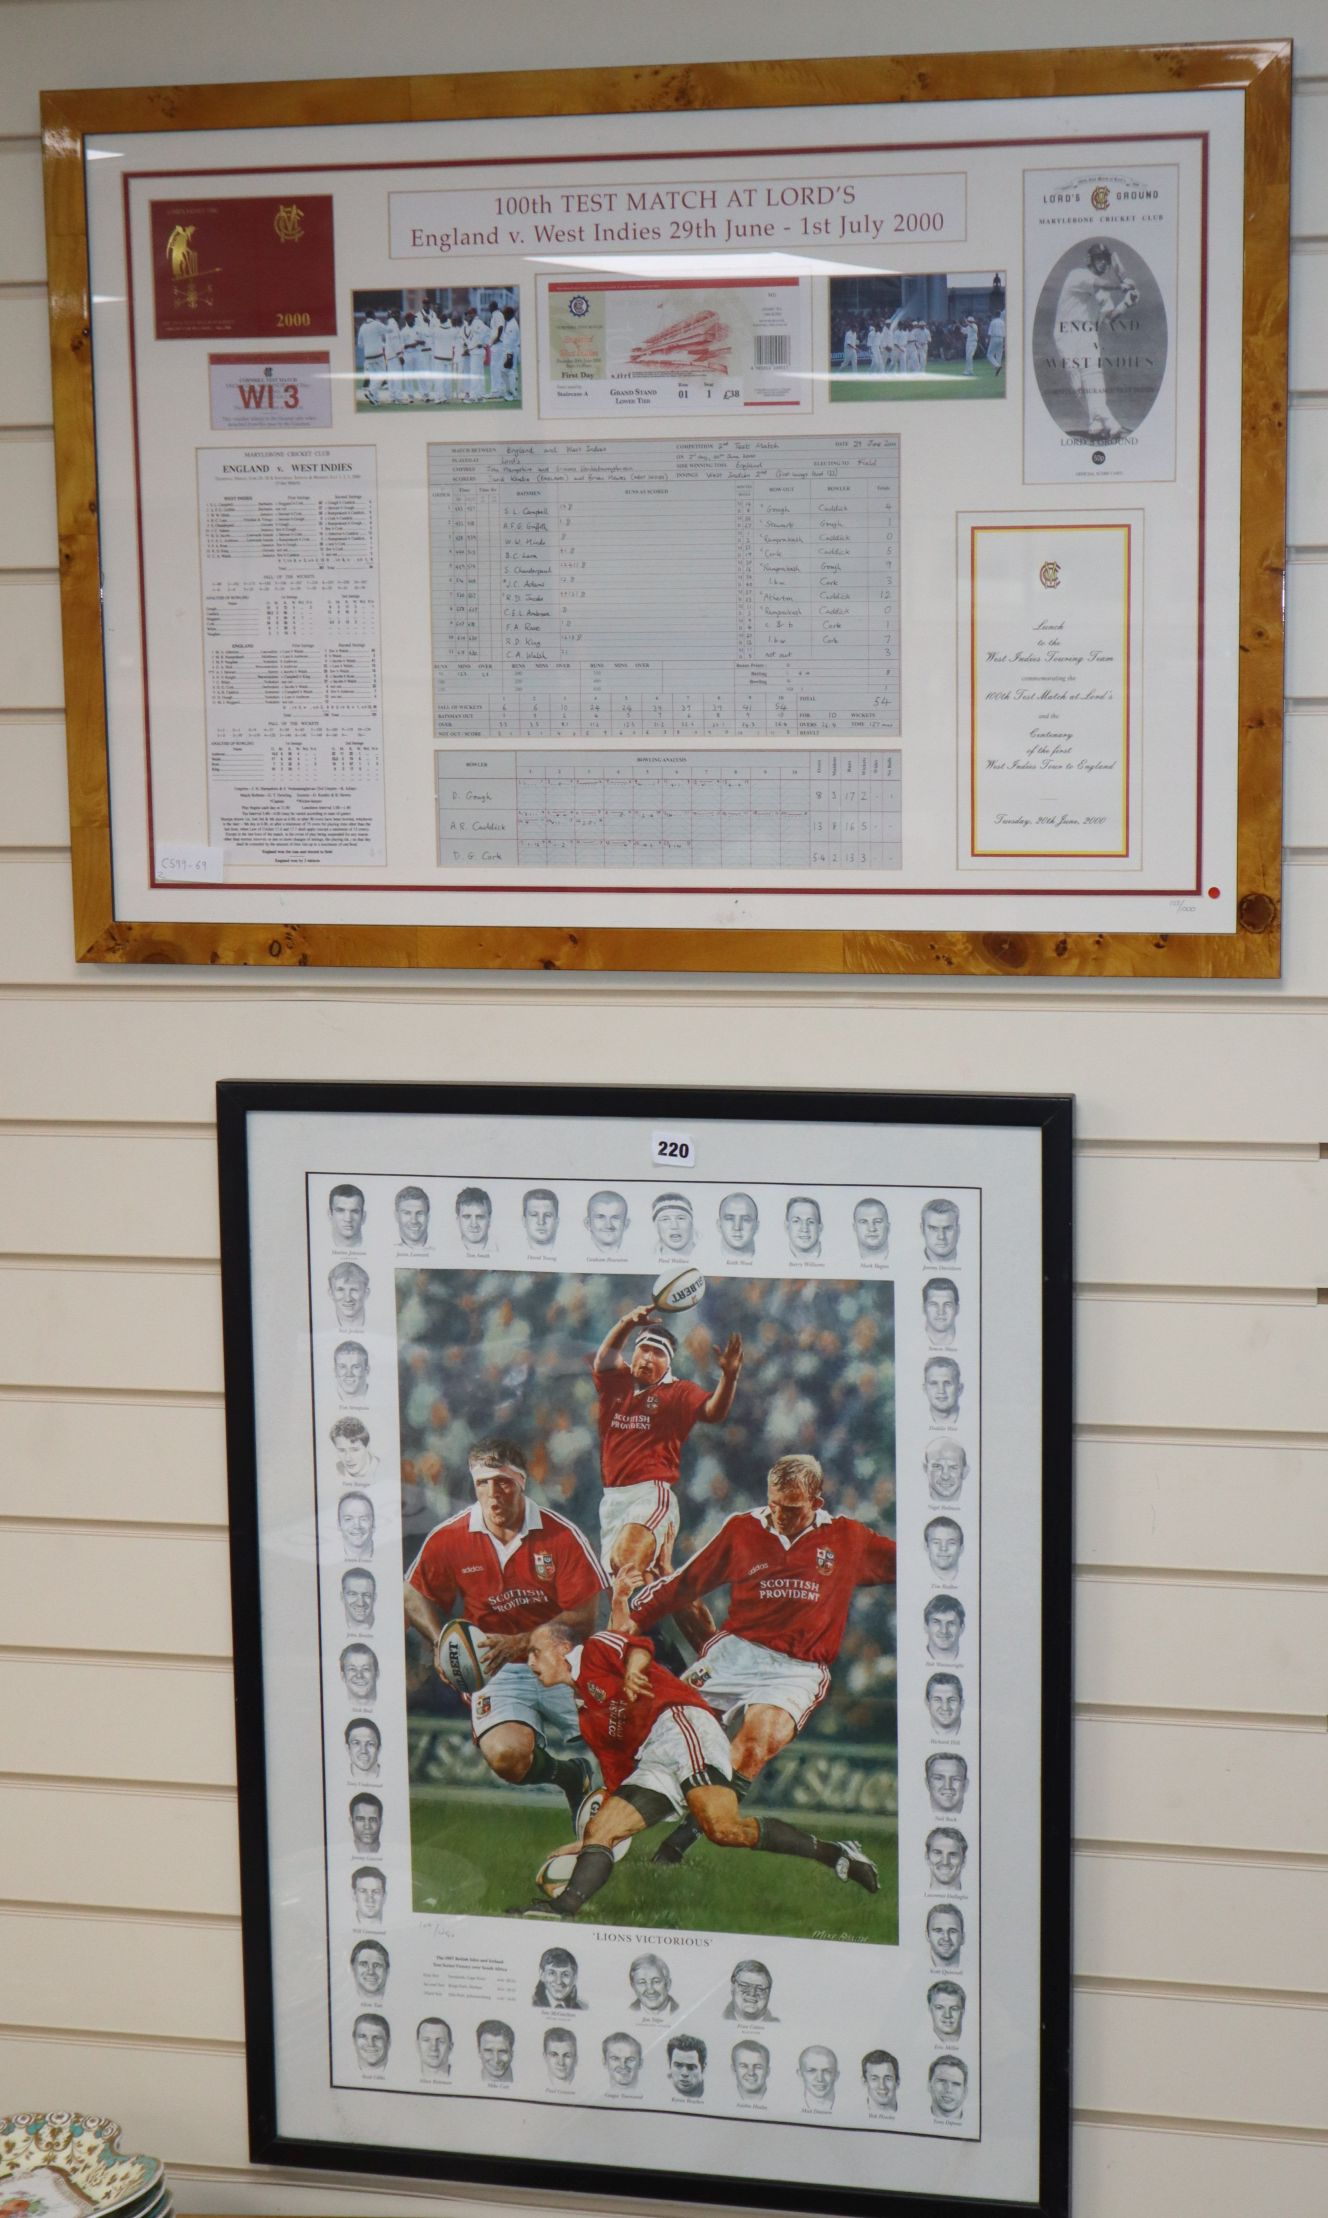 Lot 126 - 100th Test Match memorabilia items England -V- West Indies year 2000, framed and a 'Lions